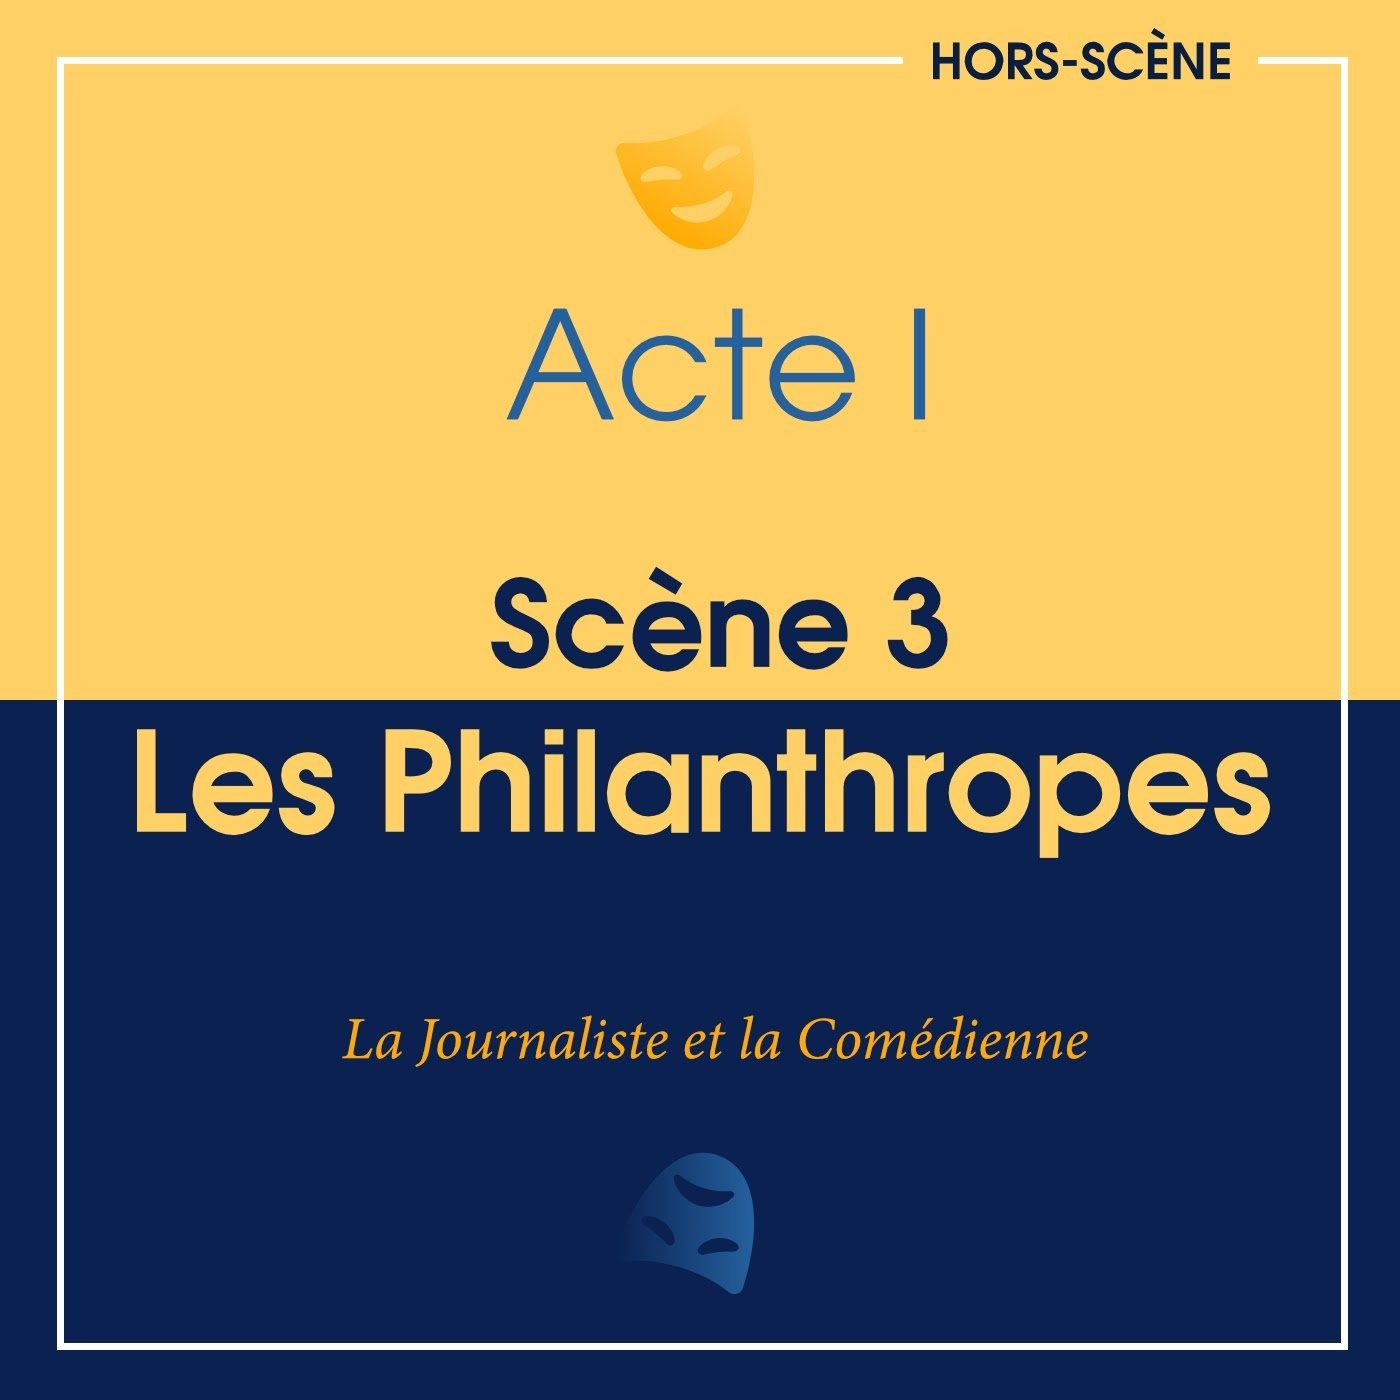 (I ; 3) Les Philanthropes